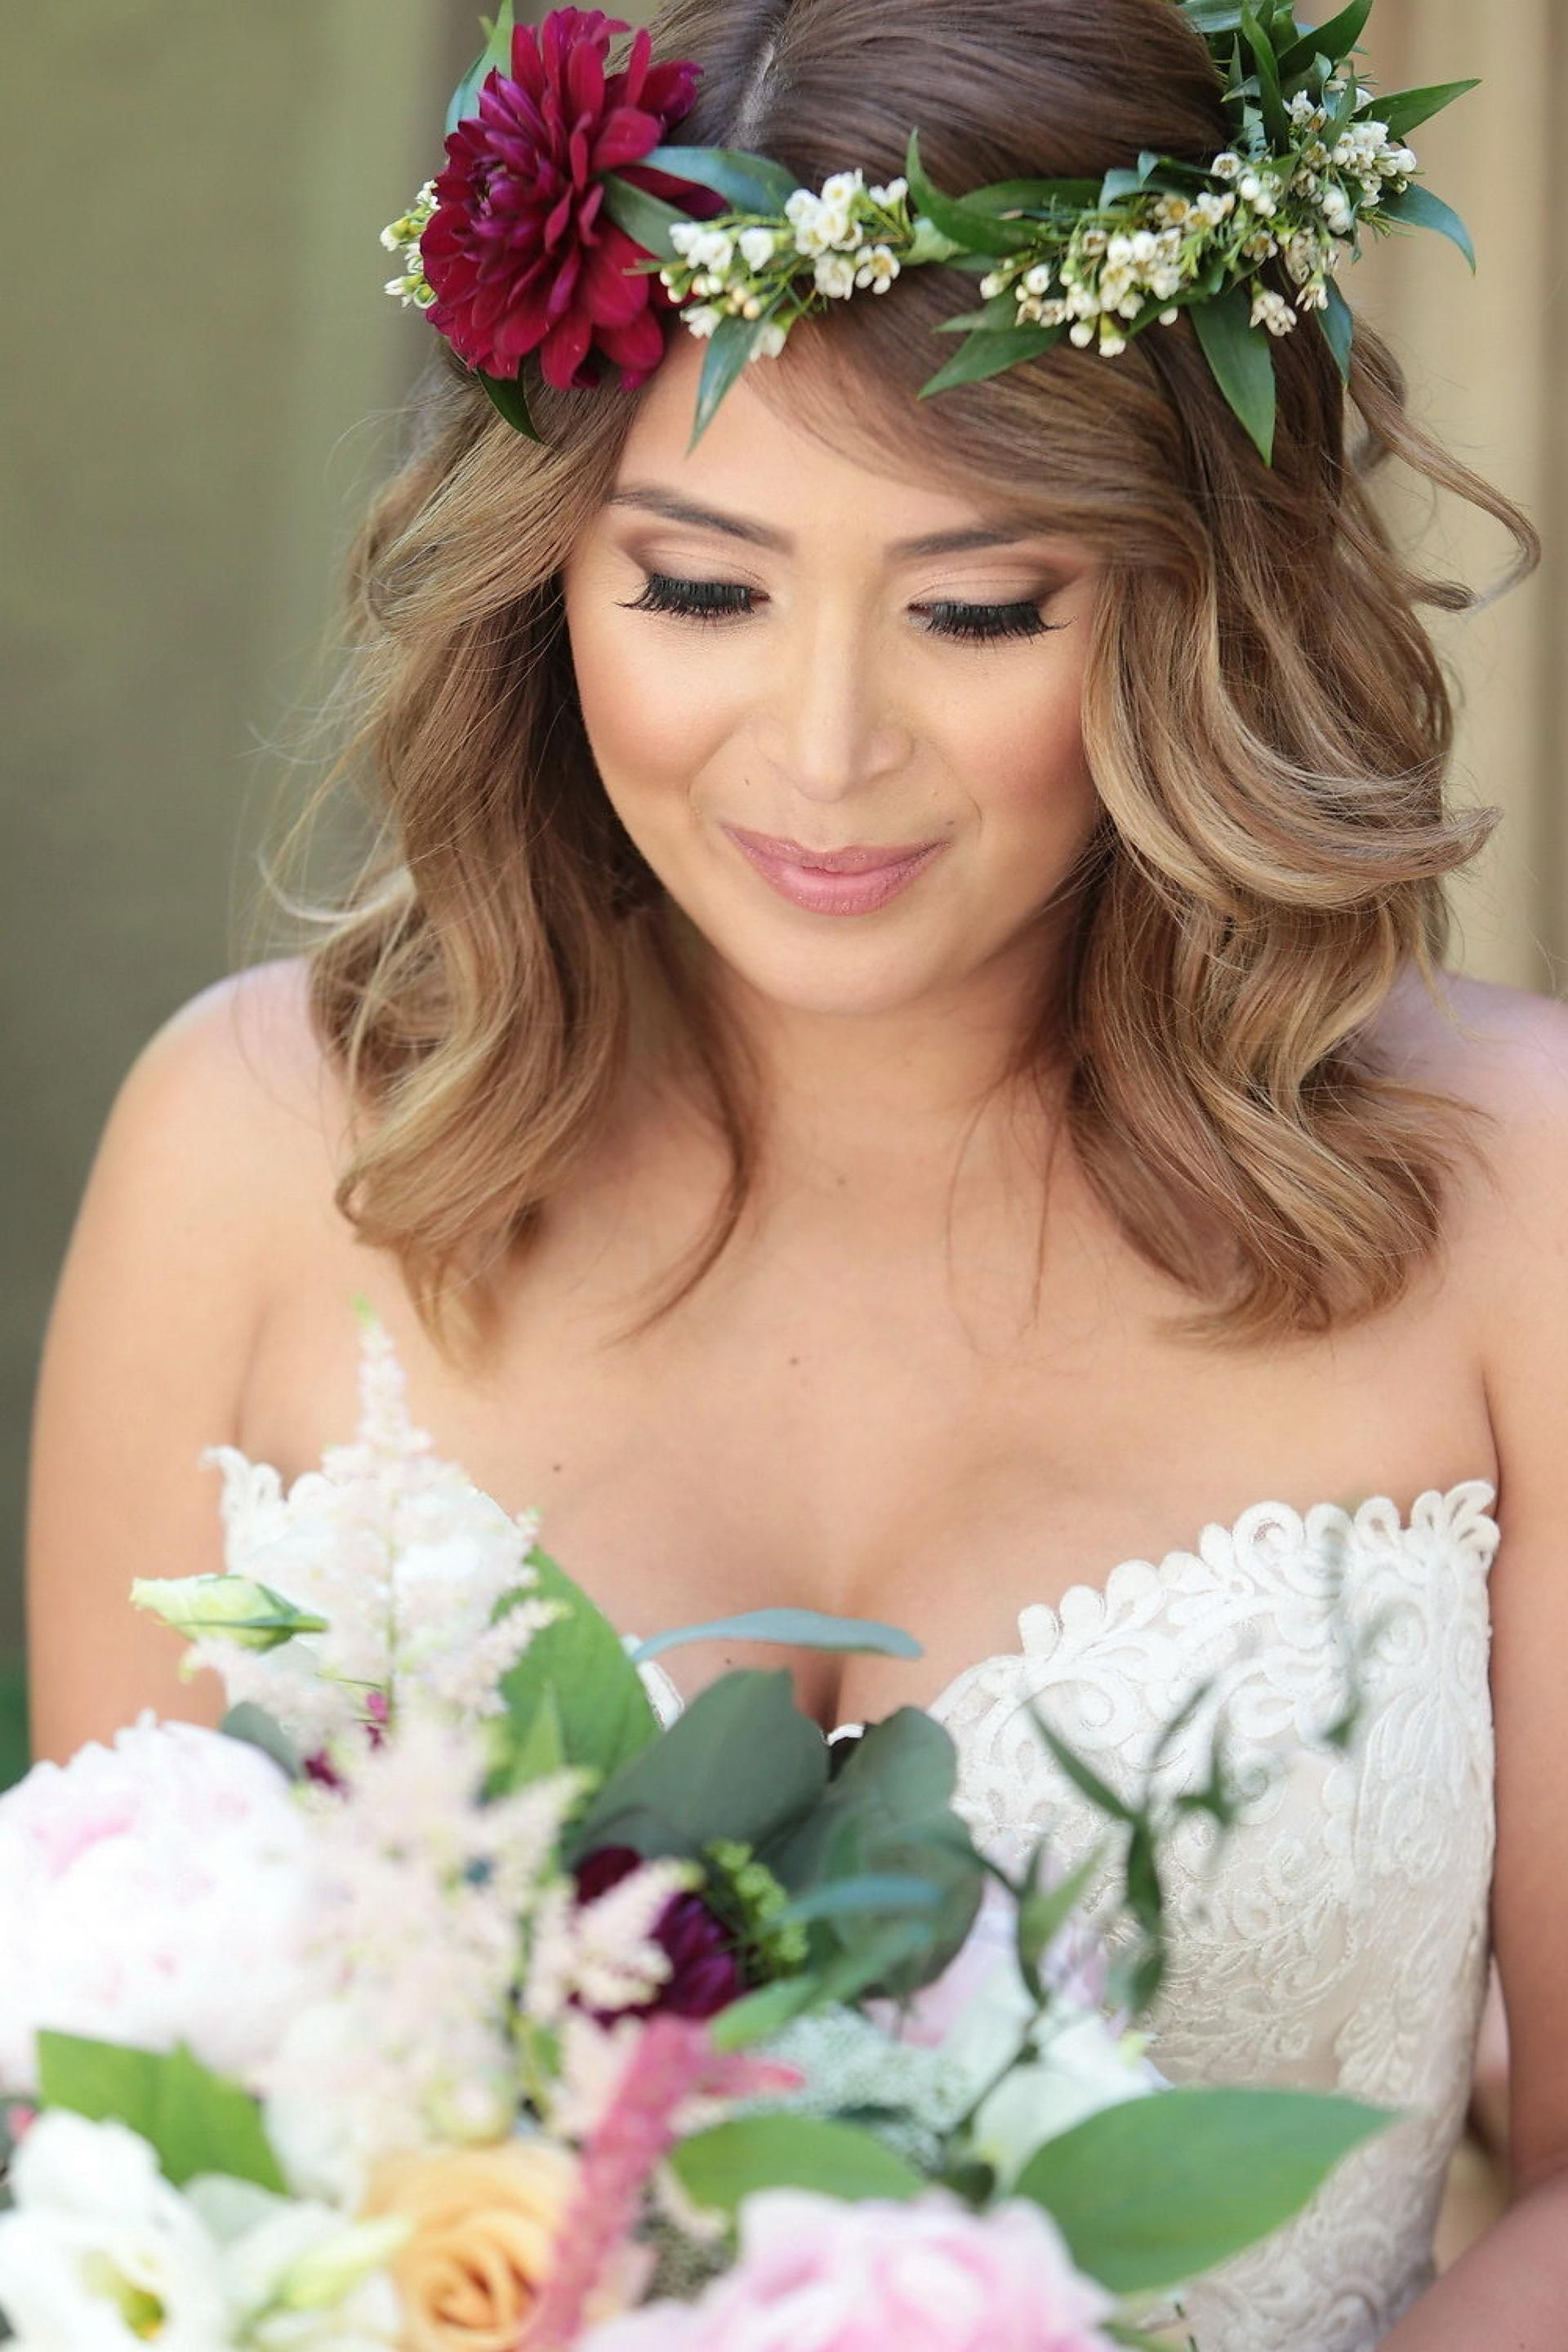 The smarter way to wed pinterest burgundy flowers loose curls flower crown burgundy flower loose curls lob cat eye kimberlee miller photography izmirmasajfo